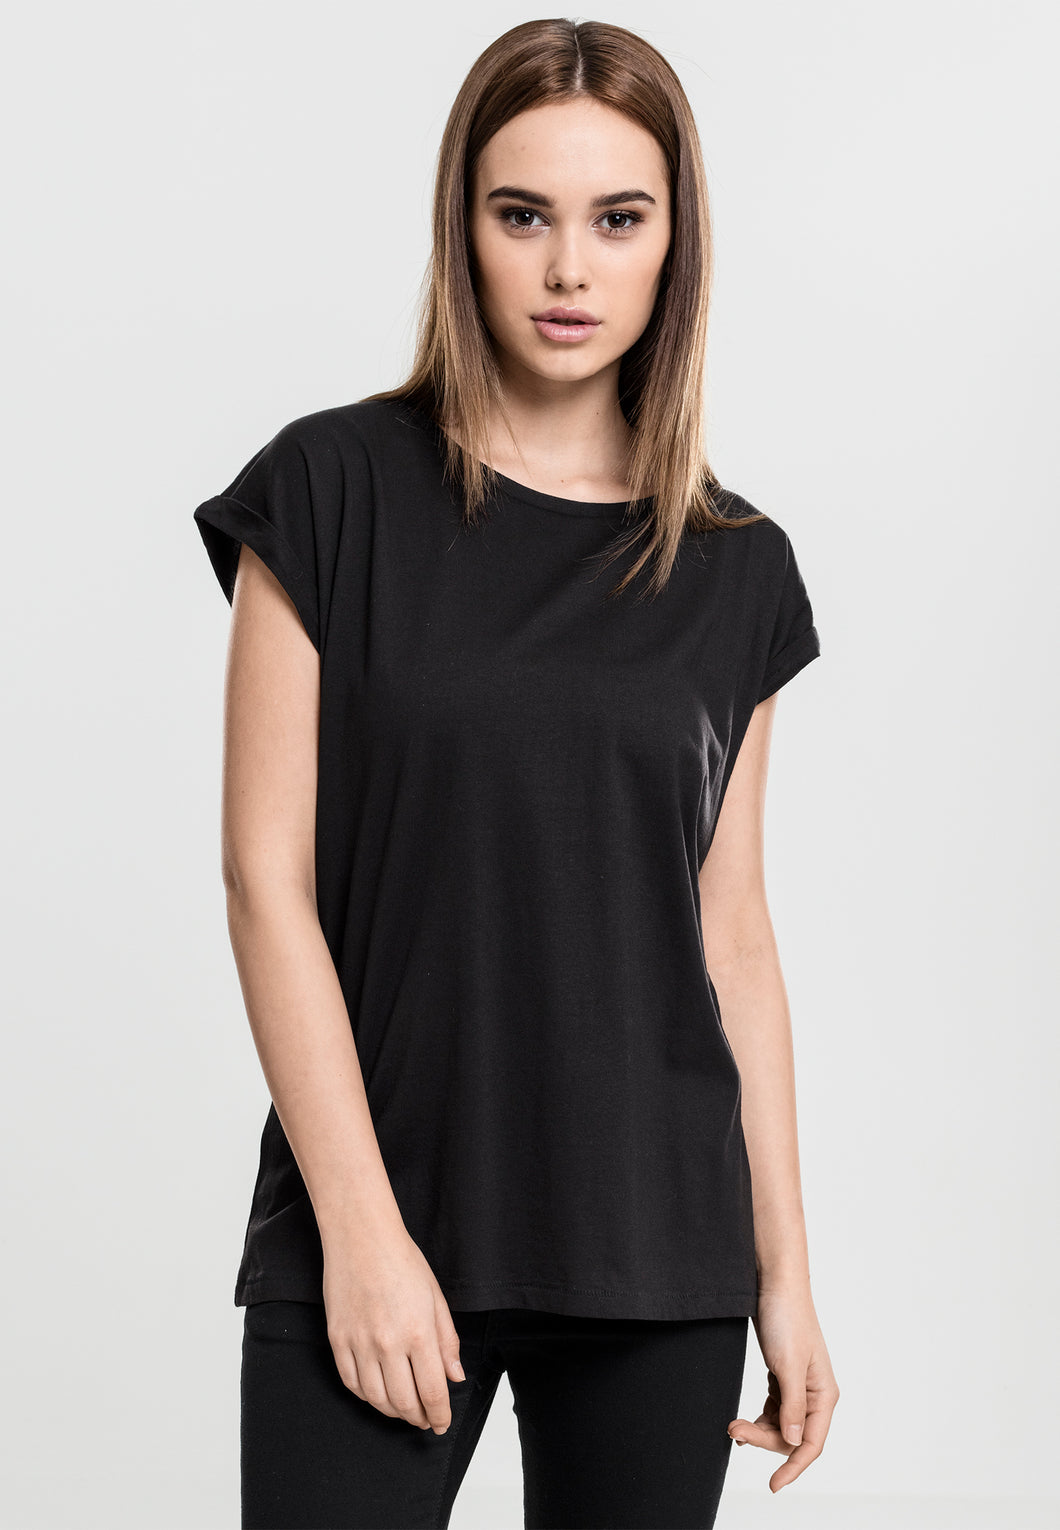 Gothic Attitude Extended Shoulder Tee - Kate's Clothing